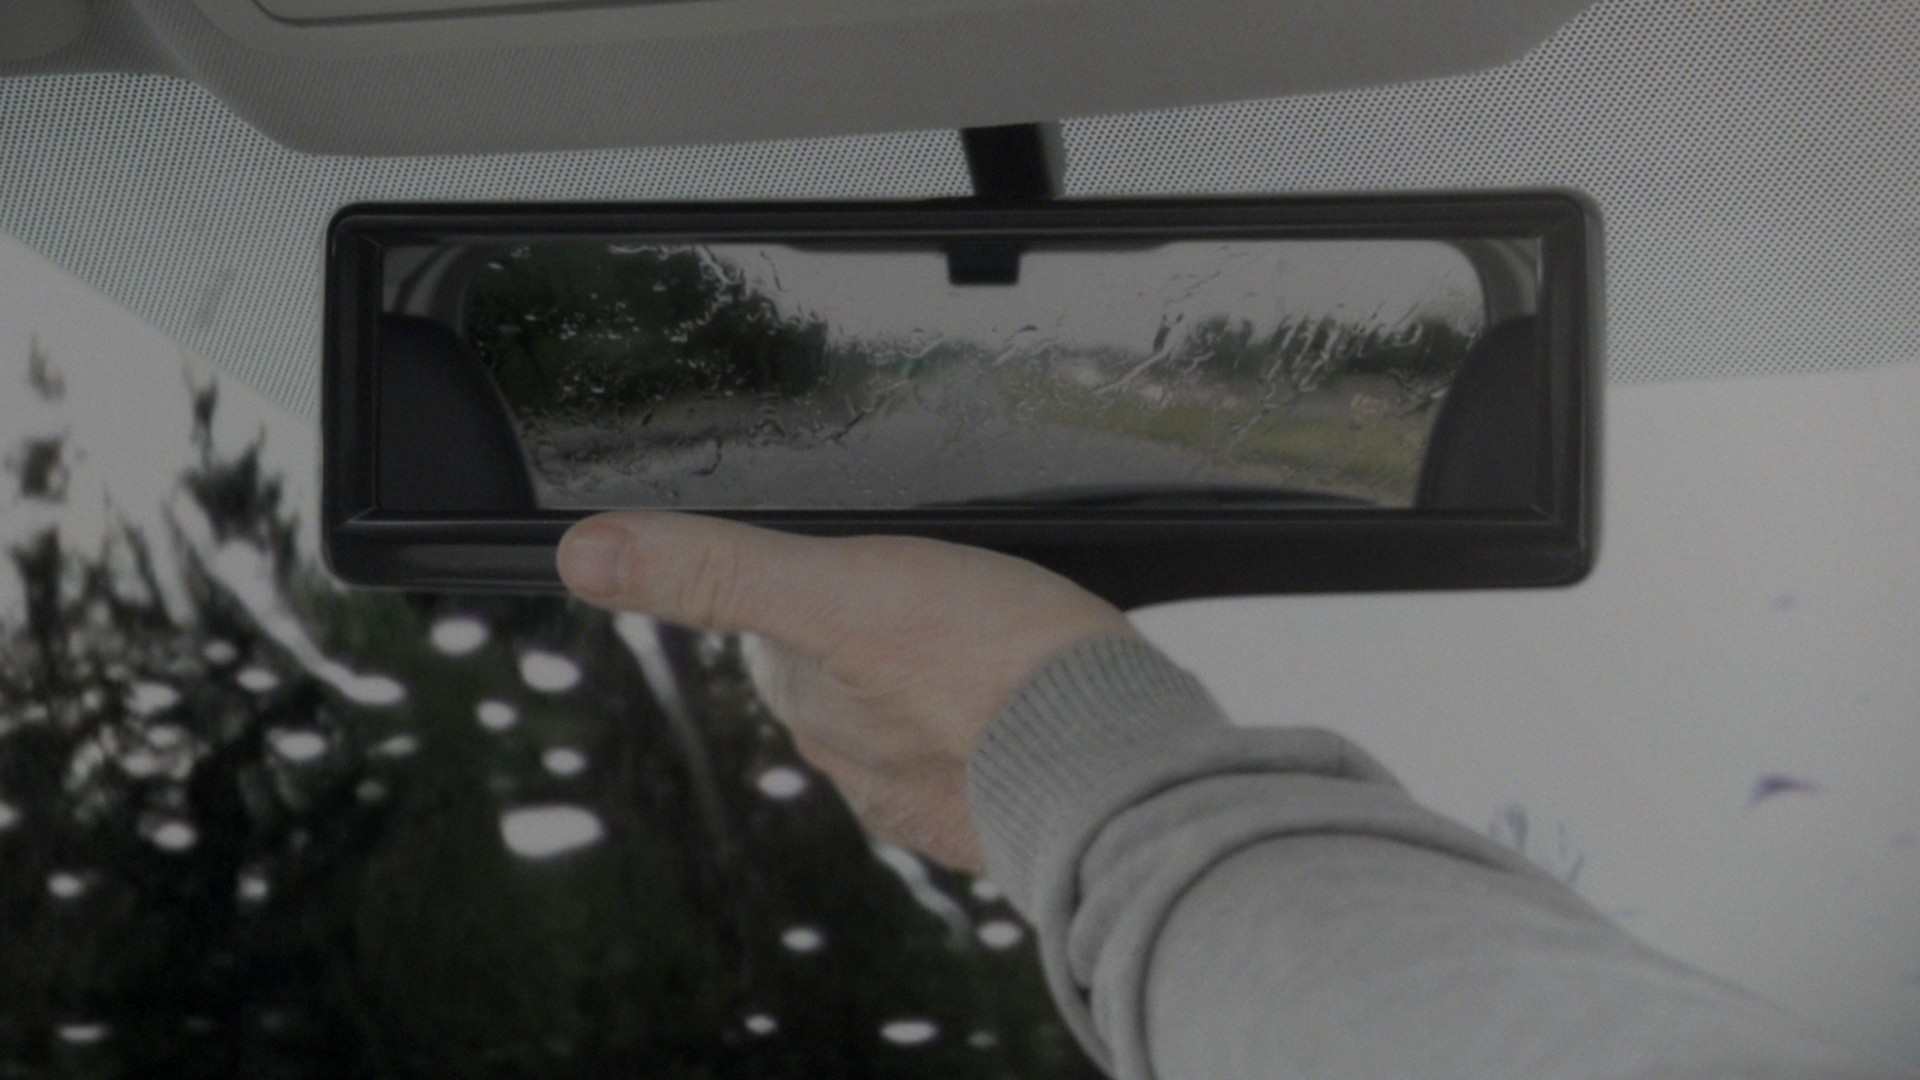 Normal mode of the rearview mirror in raining conditions